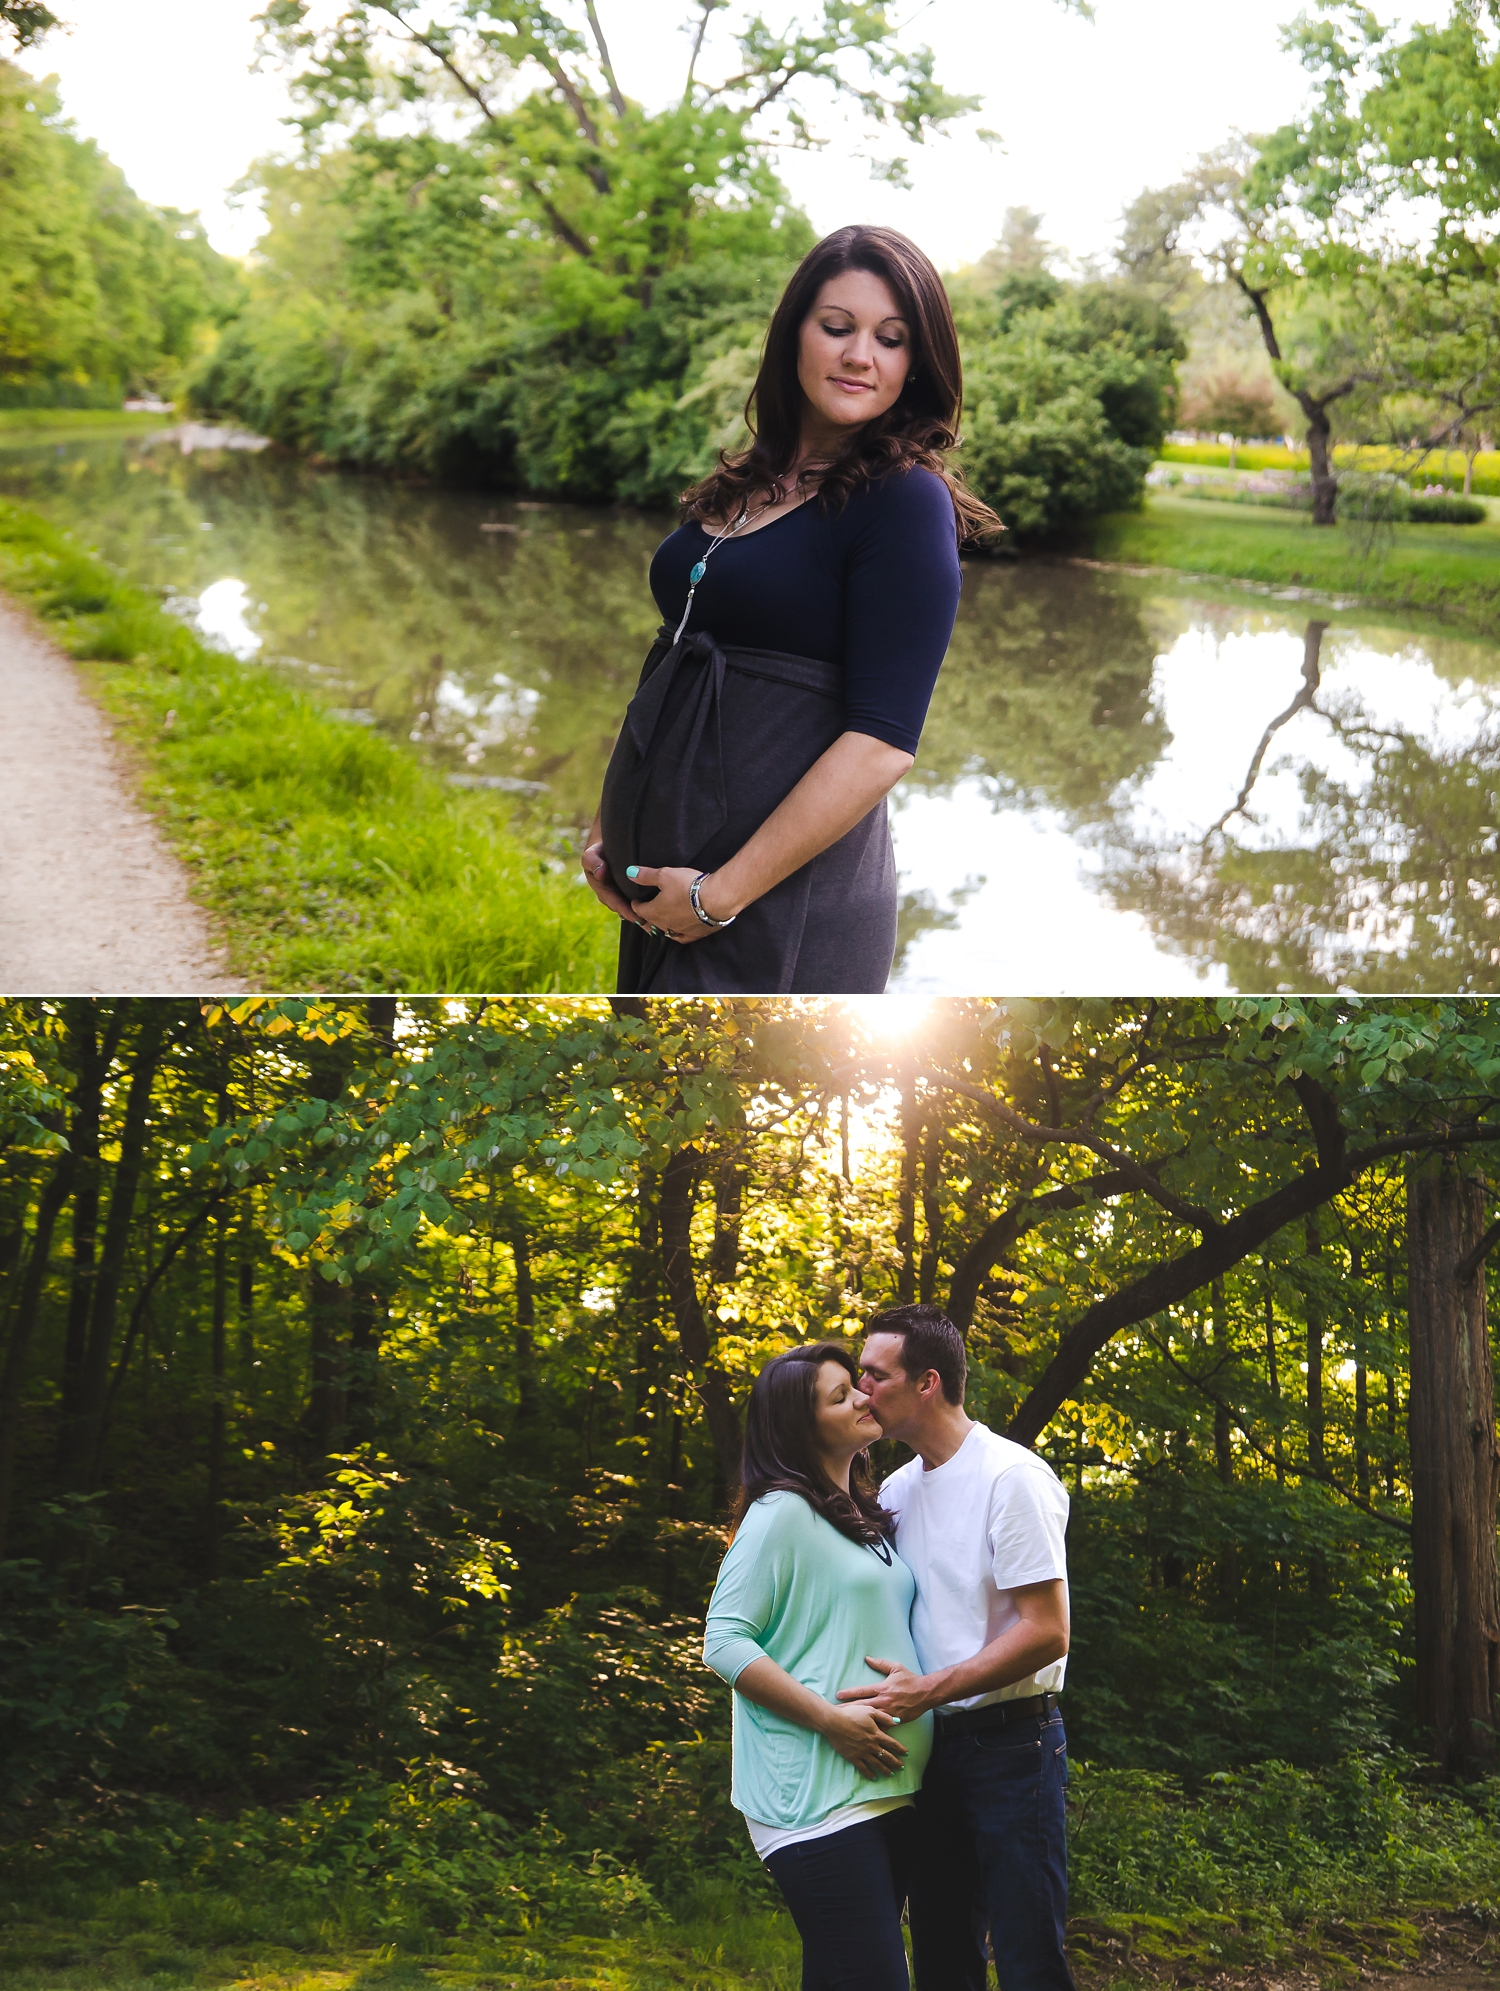 Maternity photos at an outdoor location in Indianapolis.